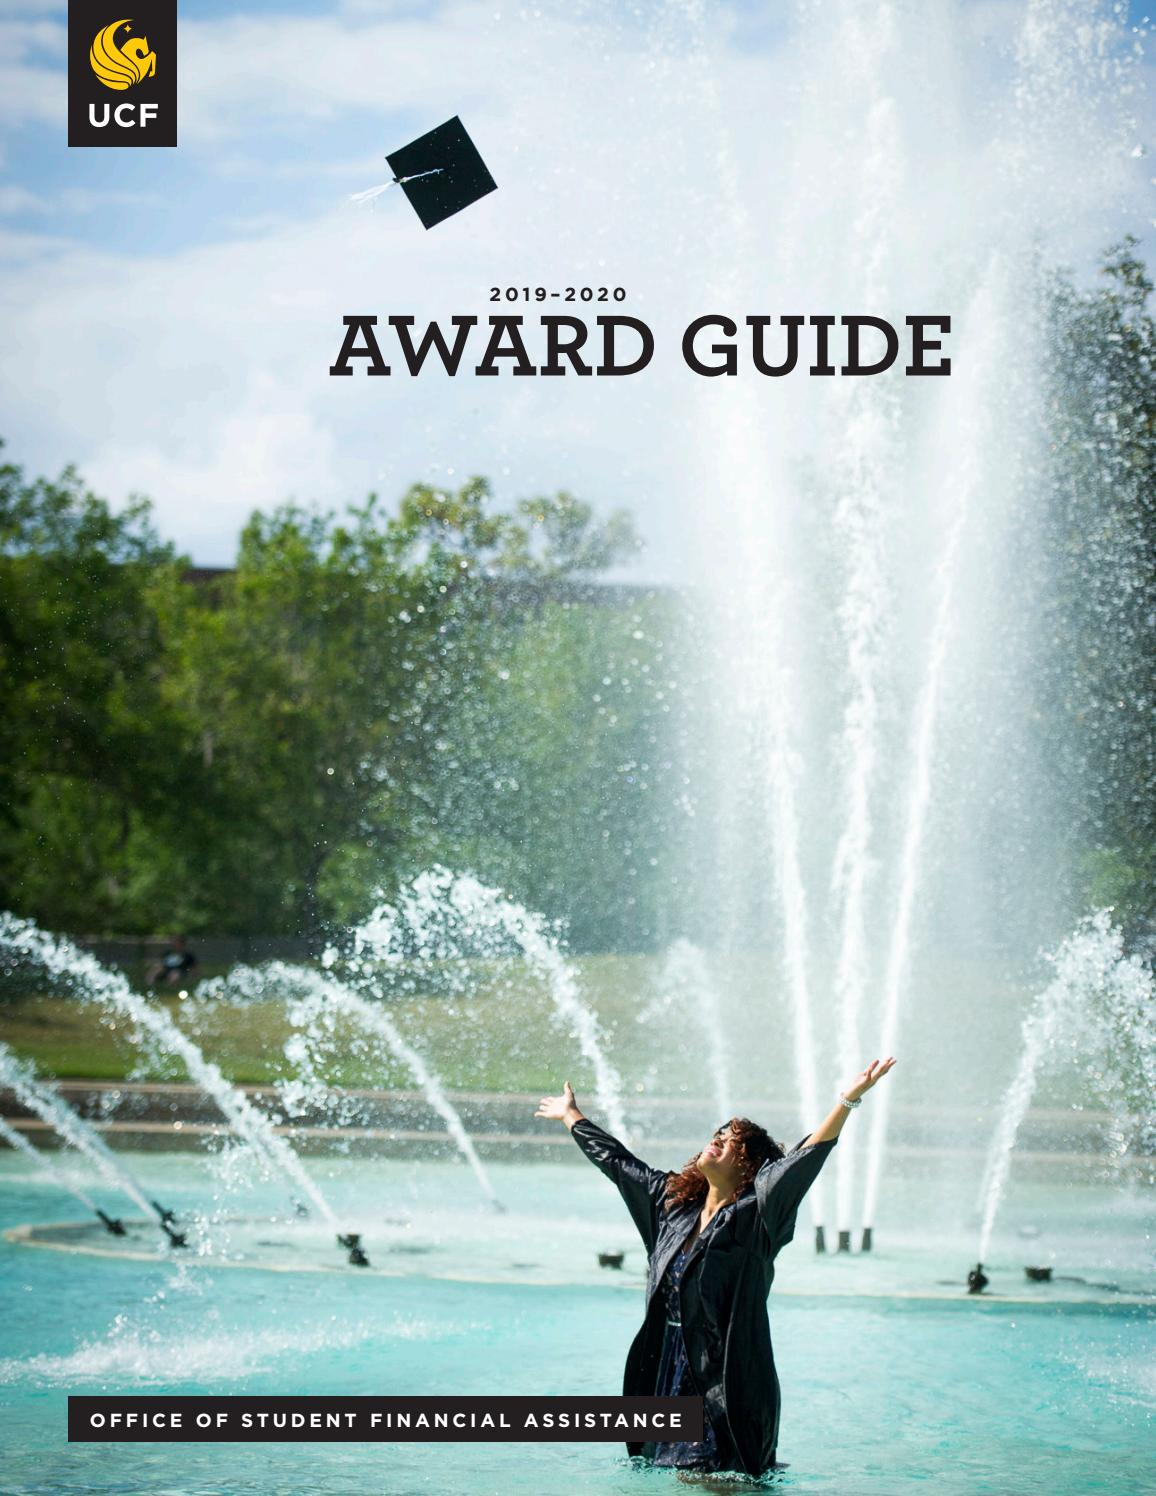 Ucf Spring 2020 Graduation.2019 2020 Award Guide Student Financial Assistance At Ucf